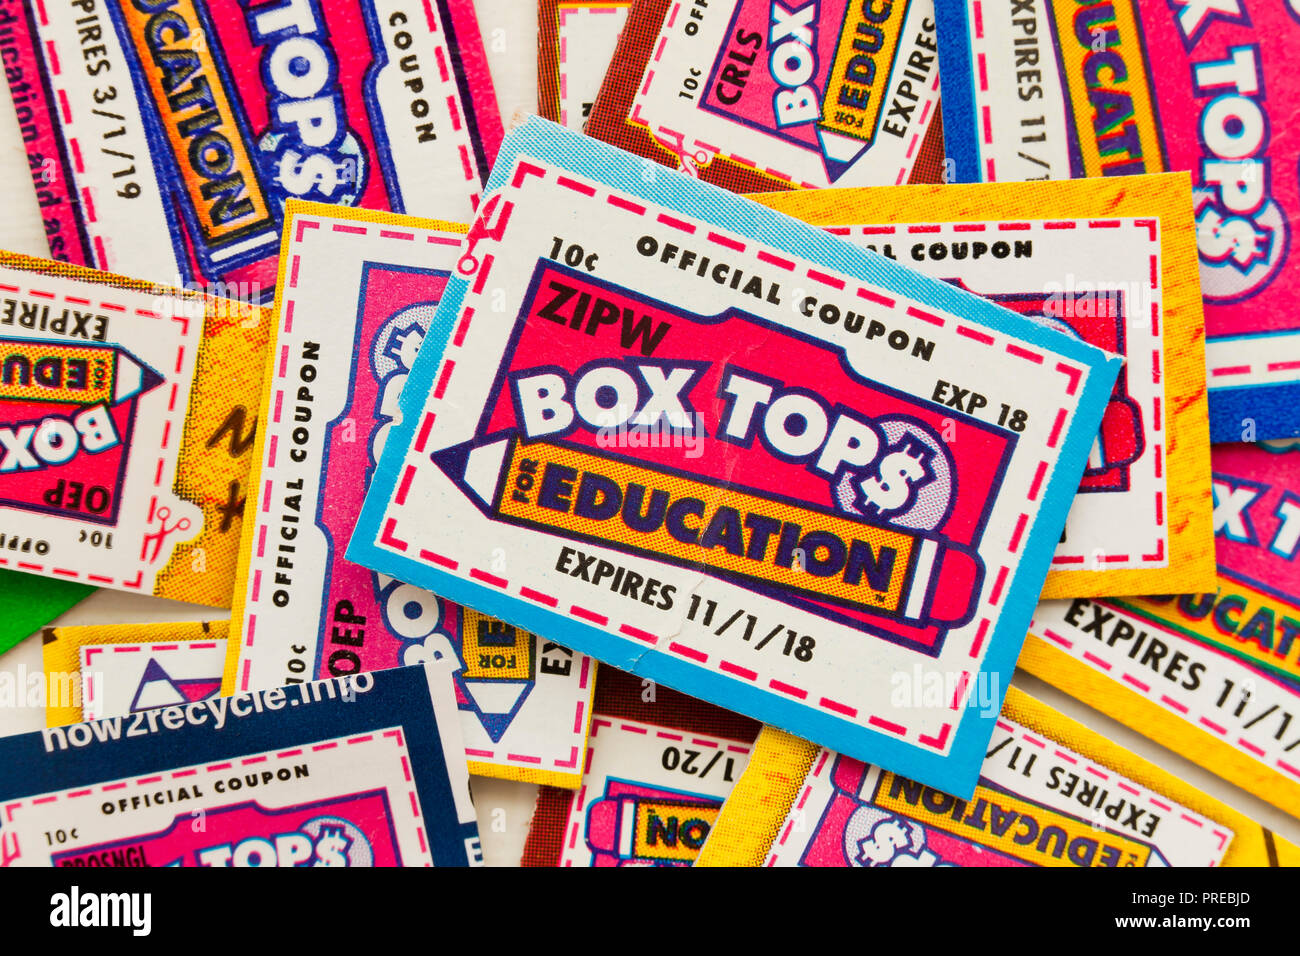 Box Tops for Education coupons - USA - Stock Image